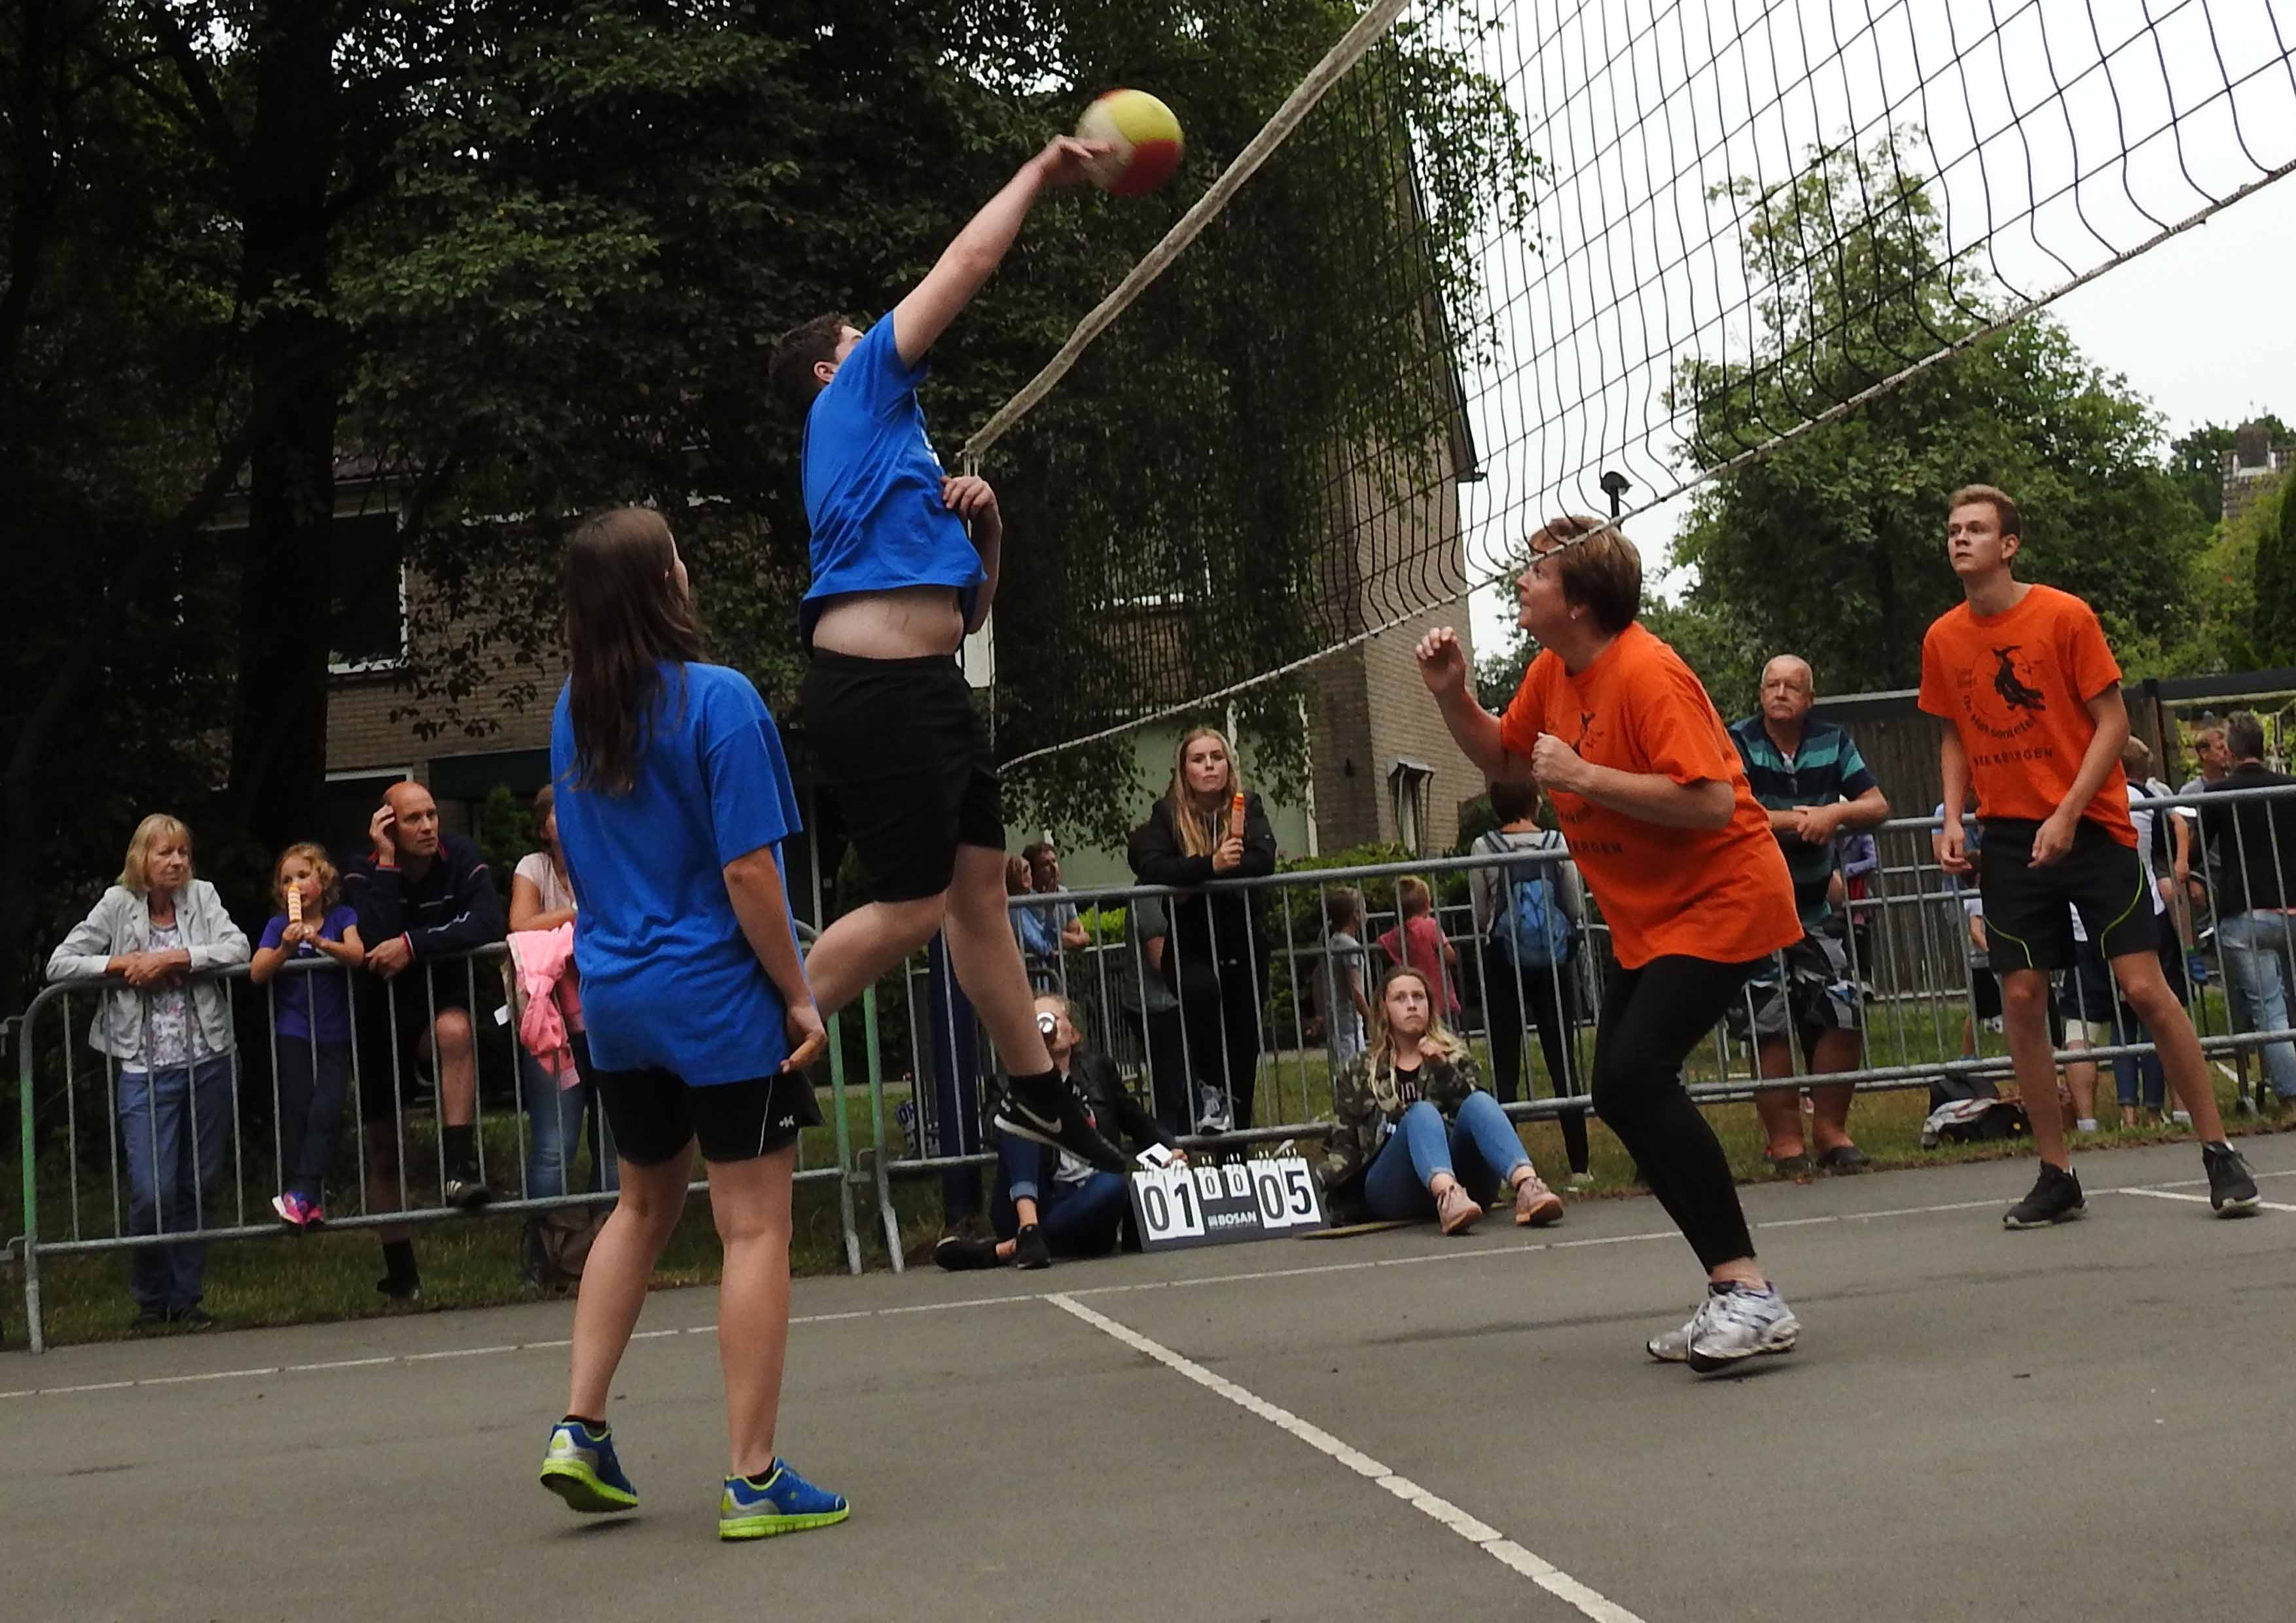 2017-06-29_BB_Straatvolleybal (29)